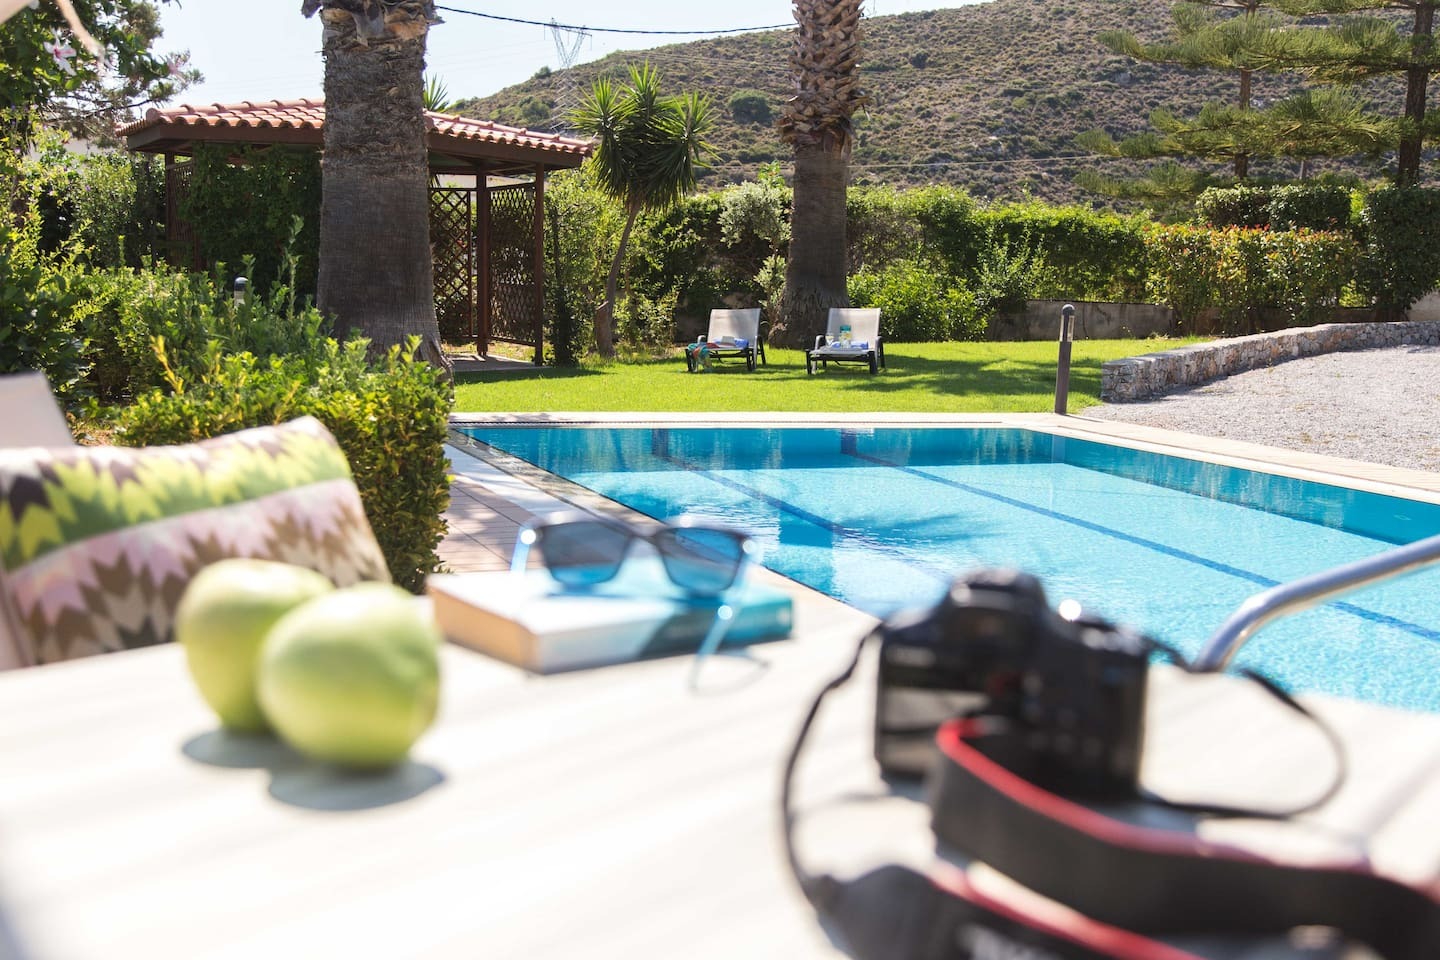 Your book, your sunglasses, your camera and a healthy breakfast by the pool!